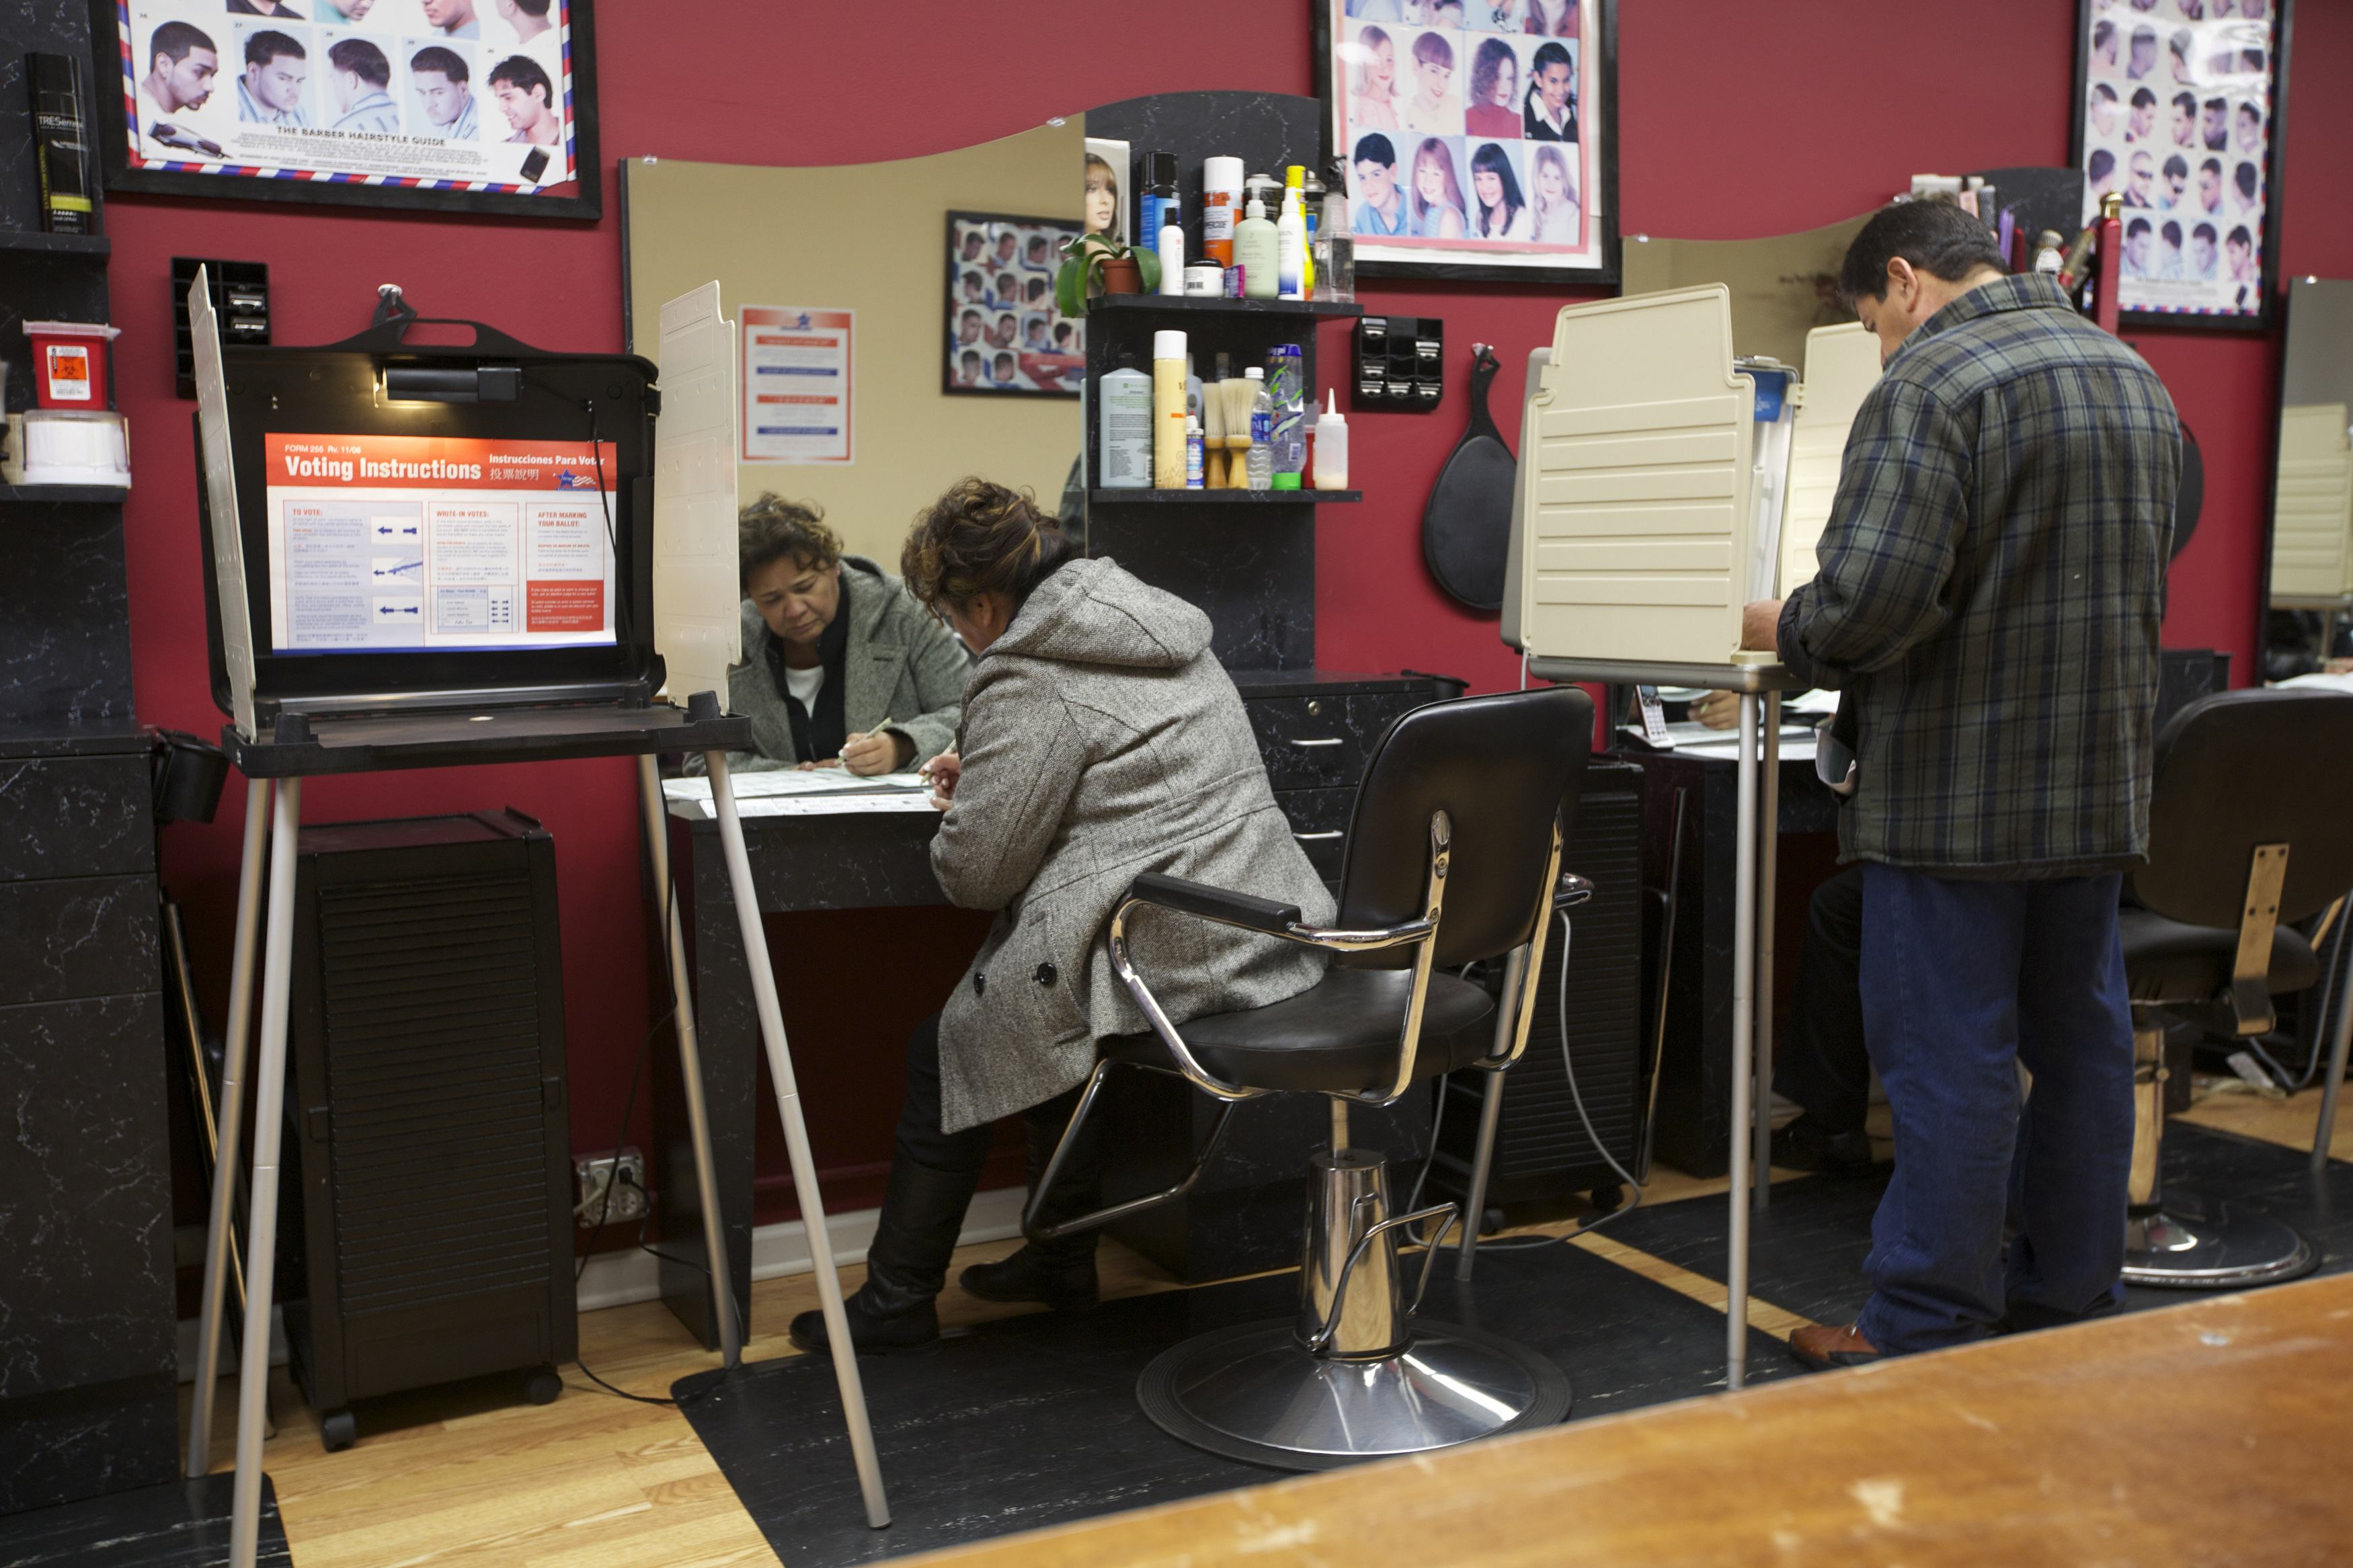 Aracle Garcia casts her ballot during the U.S. presidential election at Delias Beauty Salon in Chicago